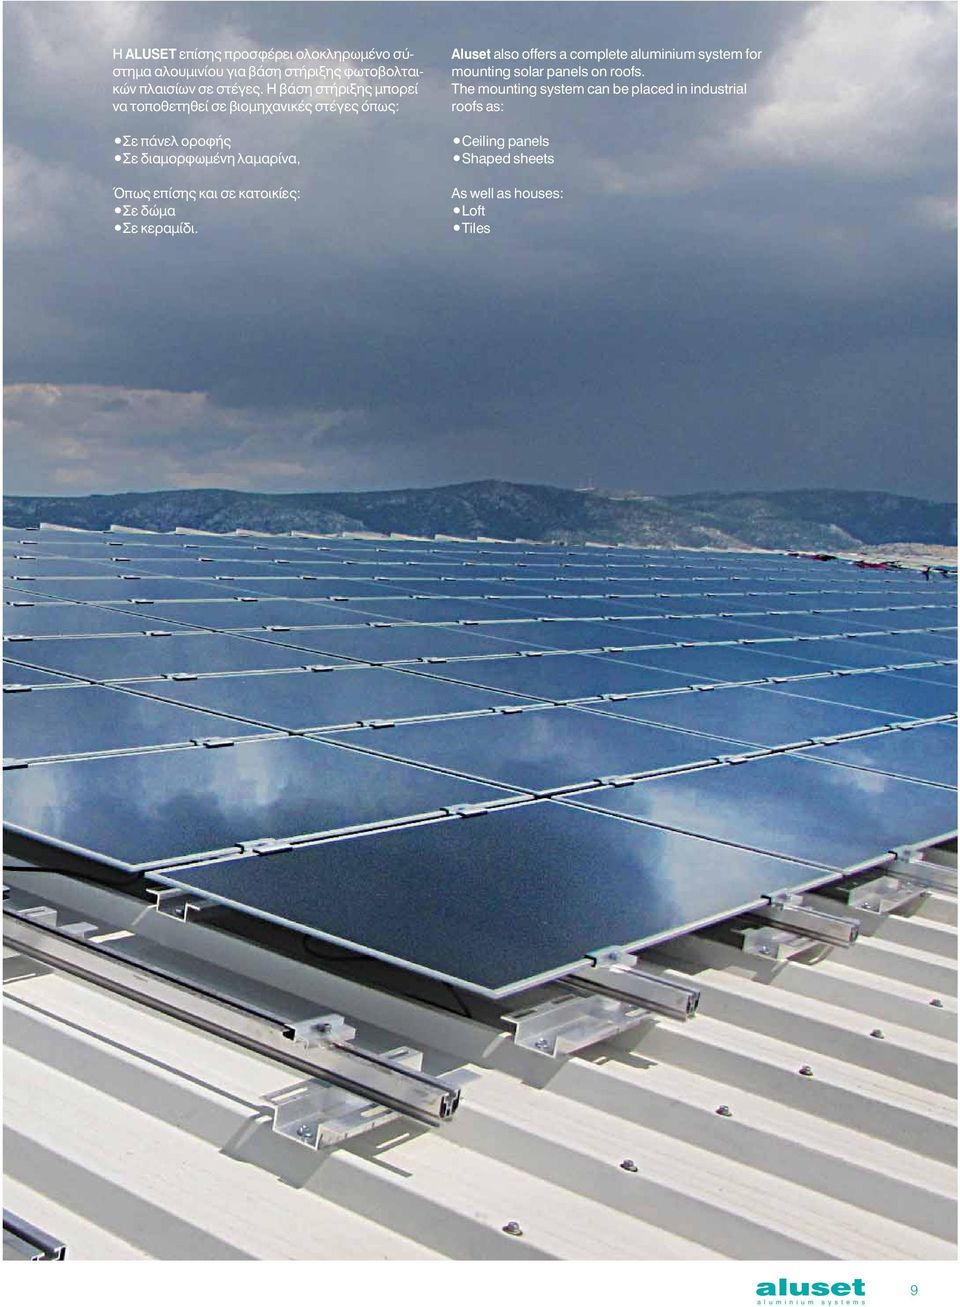 και σε κατοικίες: ε δώμα ε κεραμίδι. Aluset also offers a complete aluminium system for mounting solar panels on roofs.